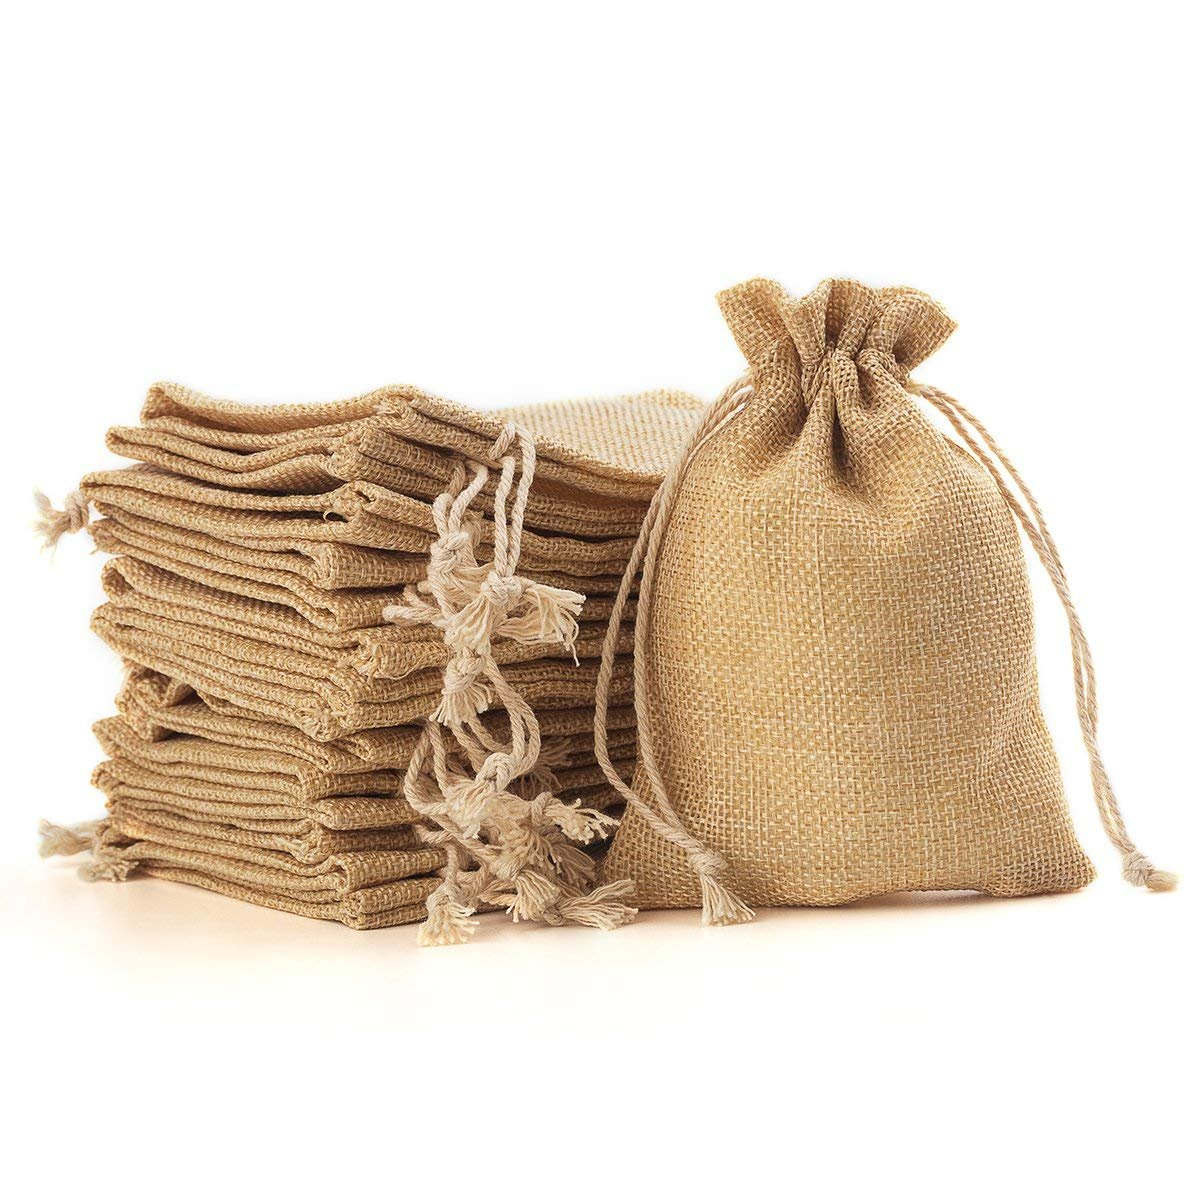 Yuxier Burlap Bags With Drawstring Party Favor Bags For Wedding Decorations Storage Arts Crafts Projects Presents Snacks Jewelry Candy Christmas